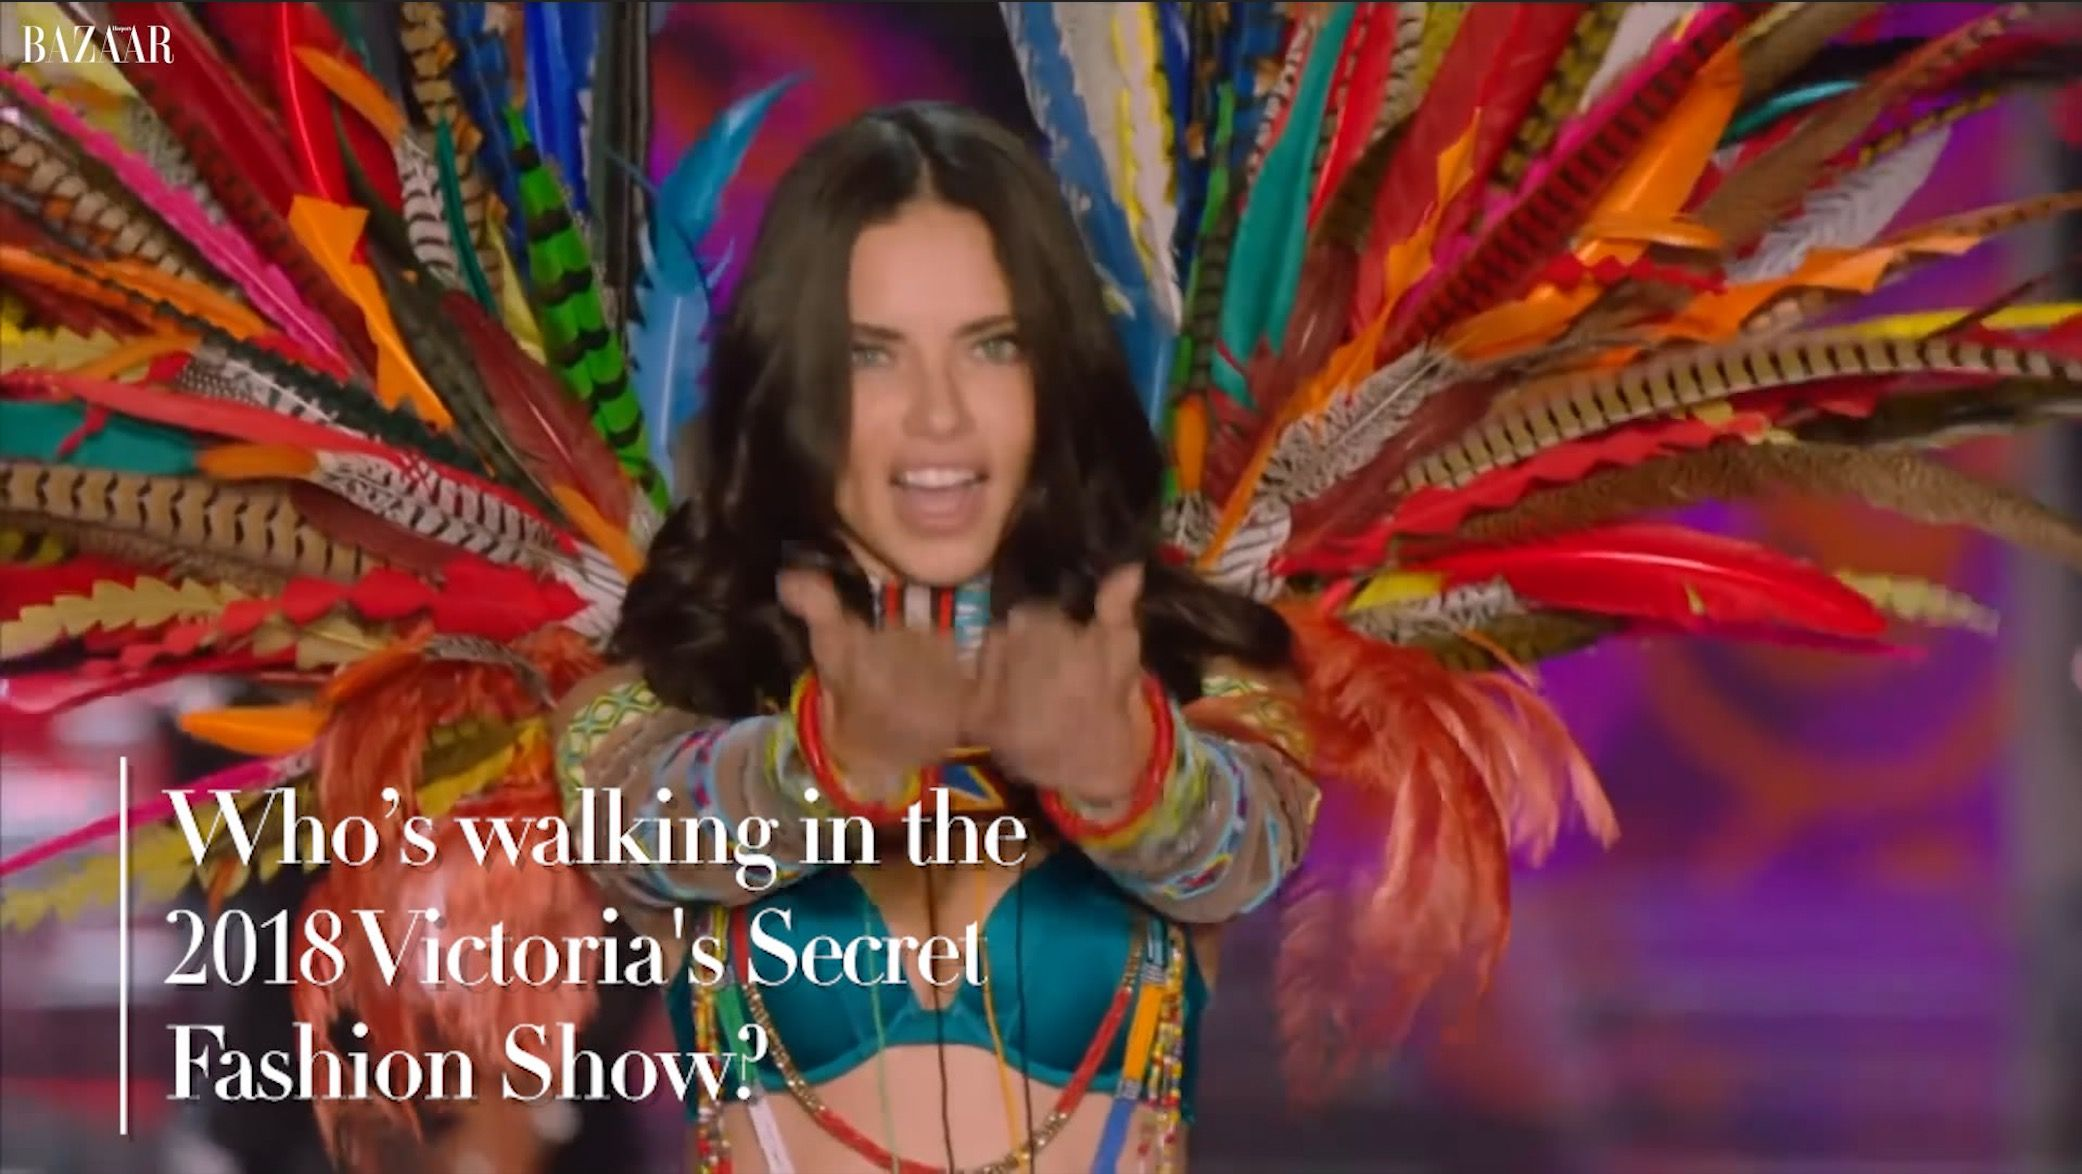 Victoria's Secret fashion show cancelled: Everything you need to know